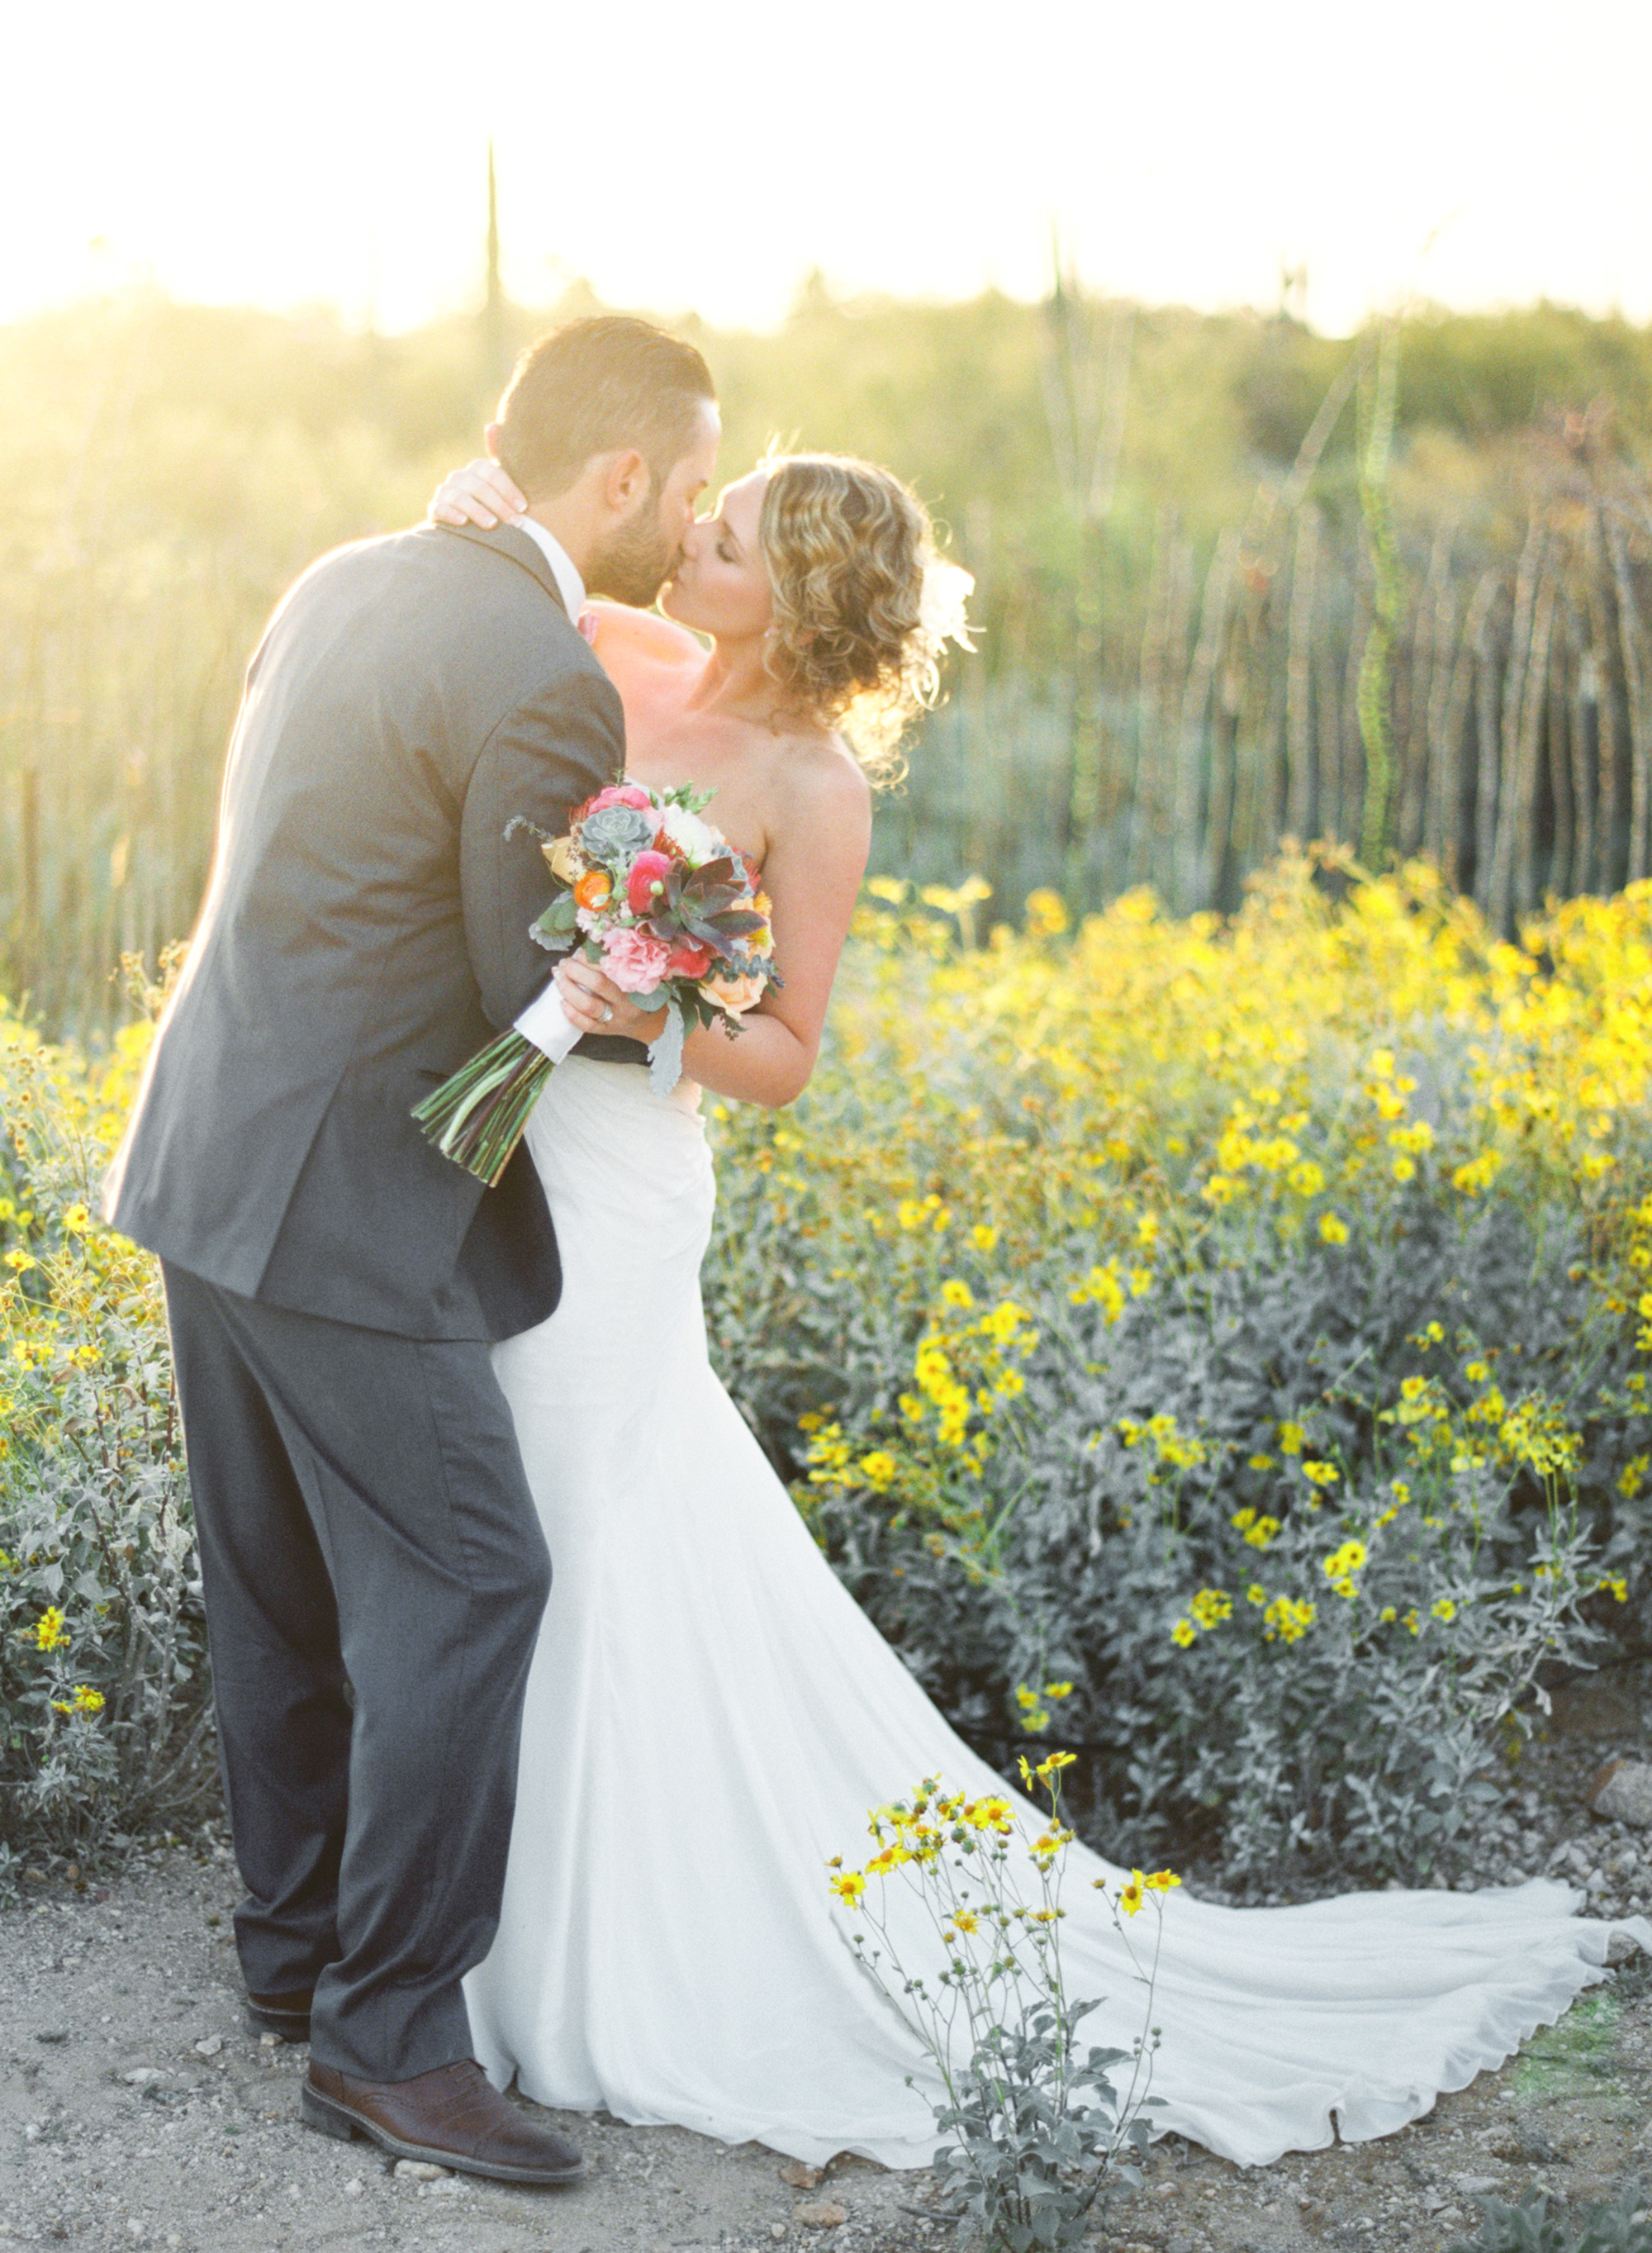 Bride & Groom kissing in wildflowers